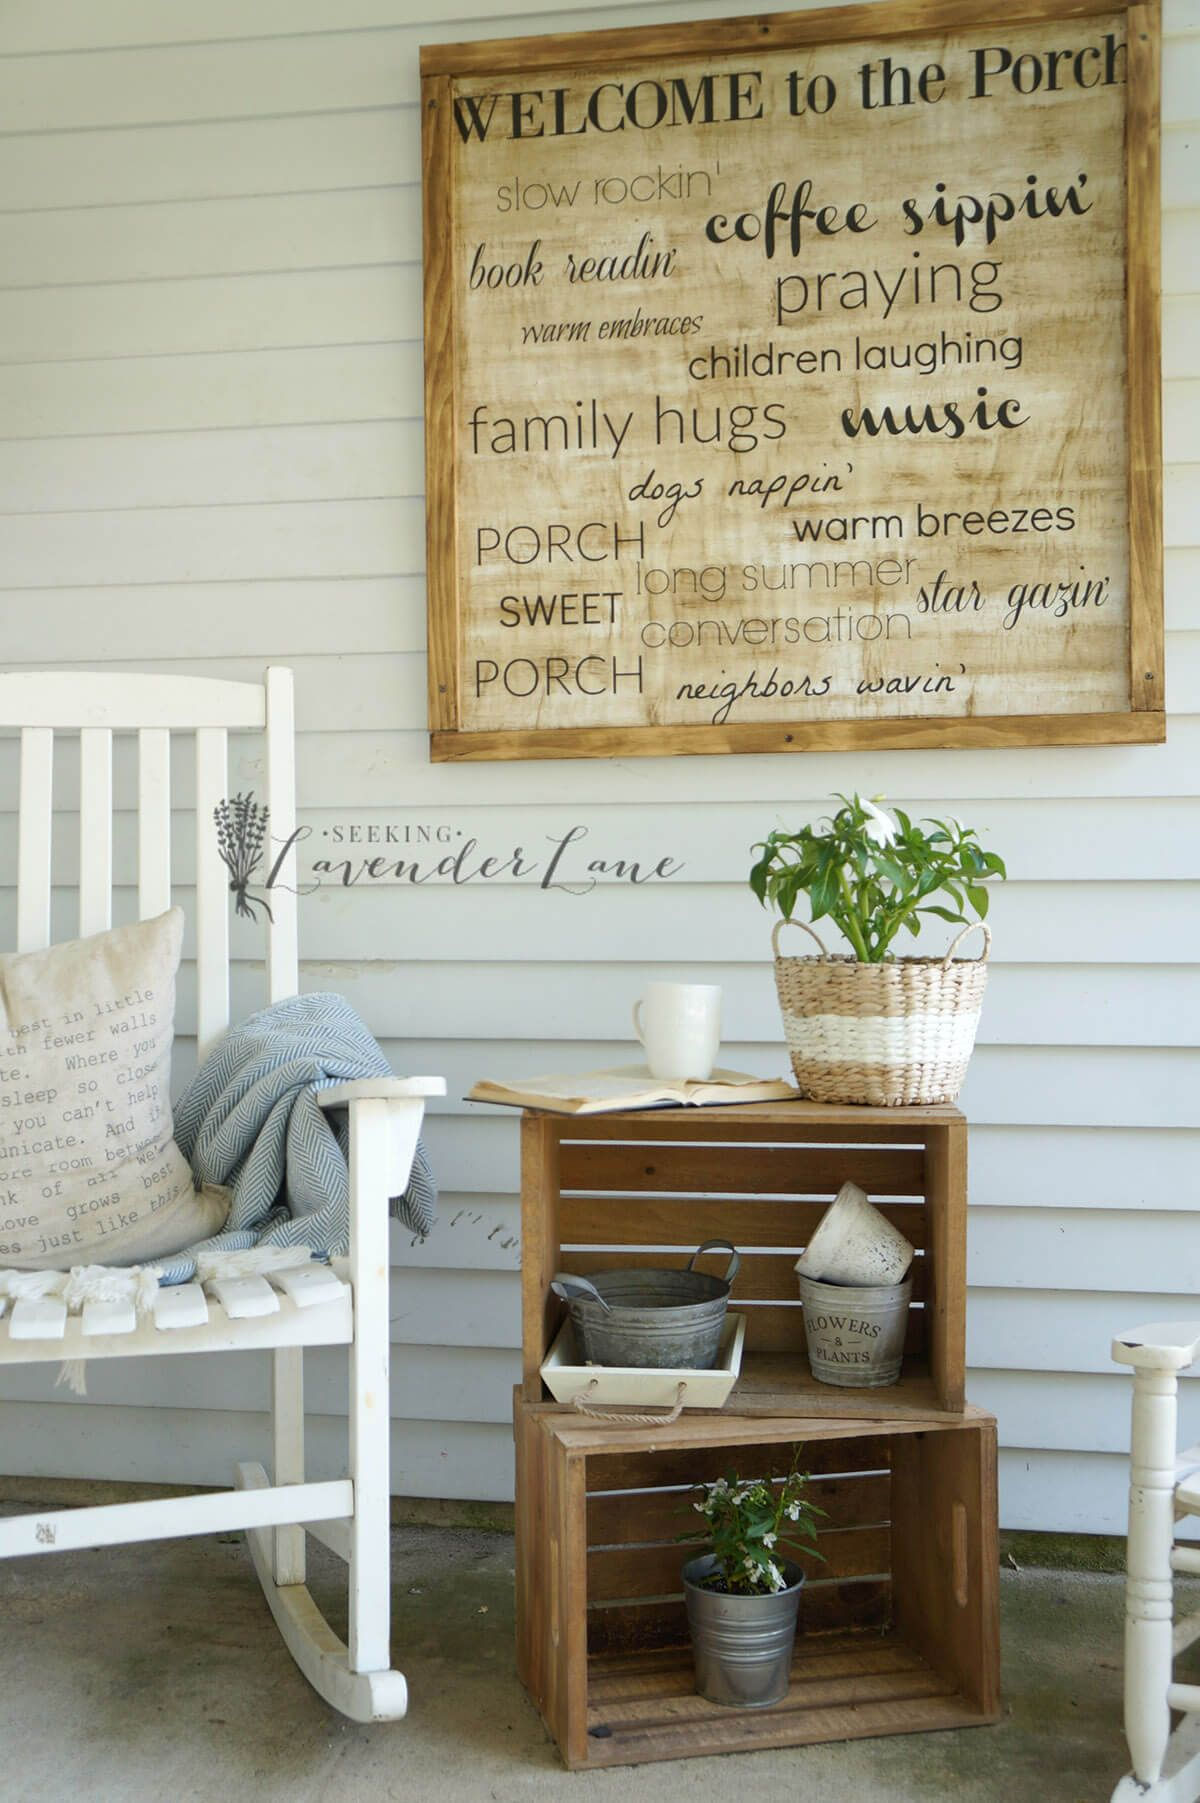 28 Beautiful Porch Wall Decor Ideas to Make Your Outdoor Area More